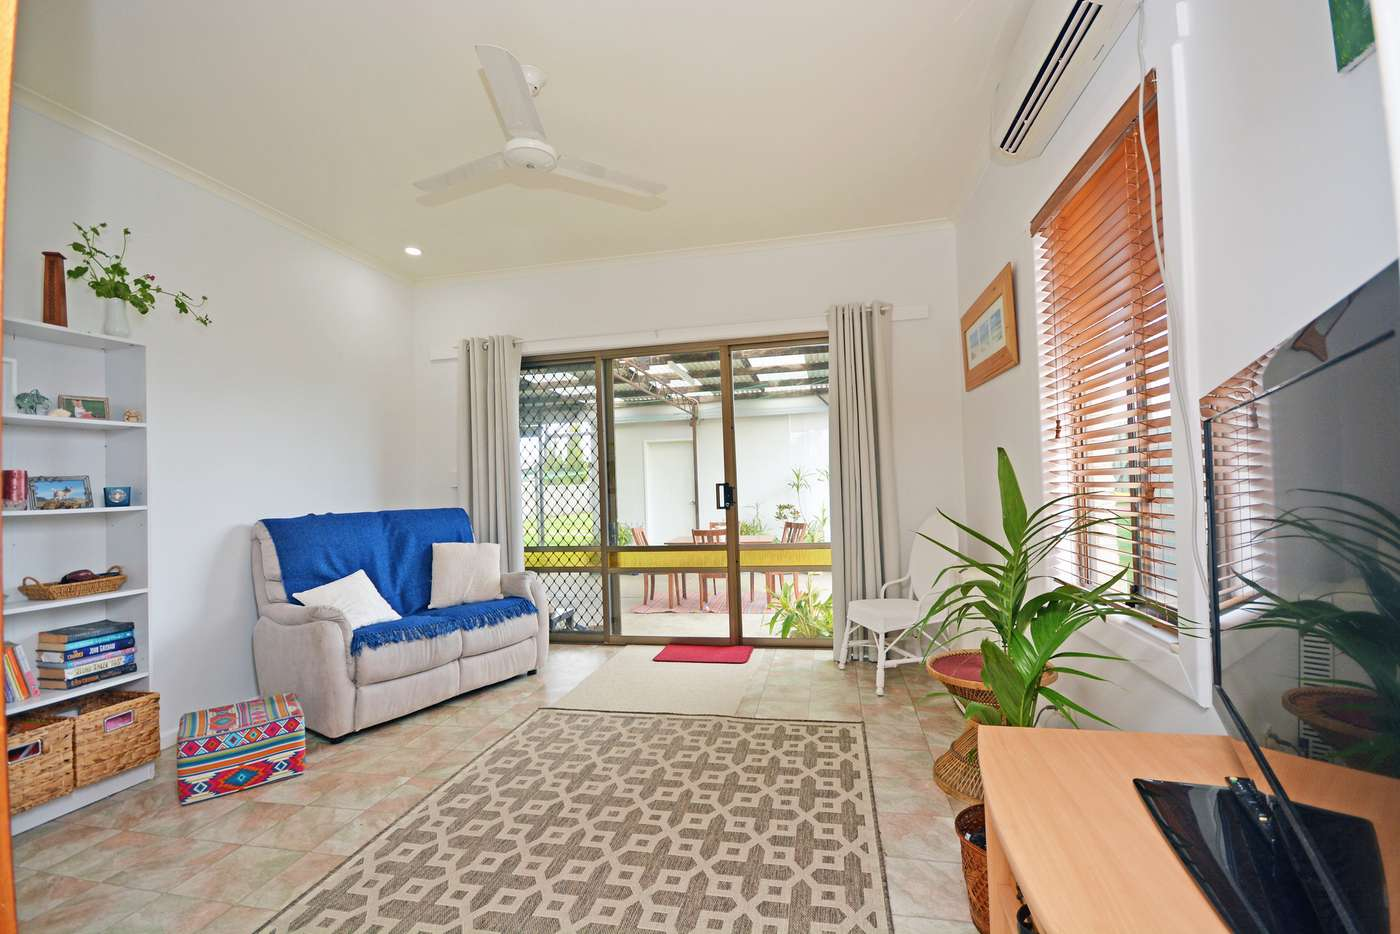 Sixth view of Homely house listing, 21 Richardson Street, Portland VIC 3305